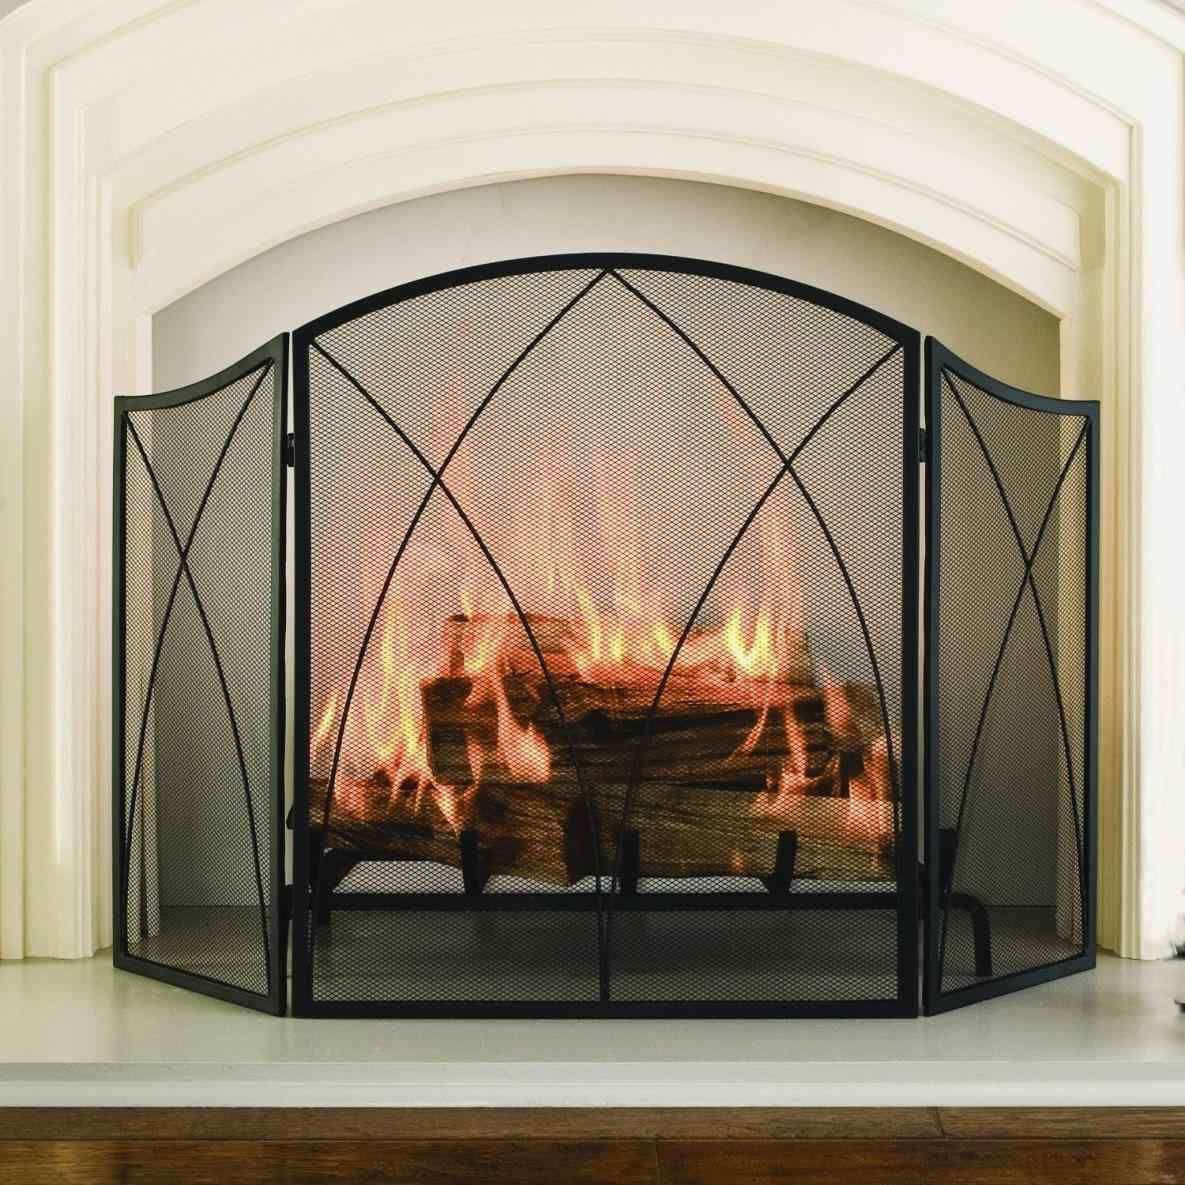 Best Fireplace Grate Elegant 11 Best Fancy Fireplace Screens Design and Decor Ideas